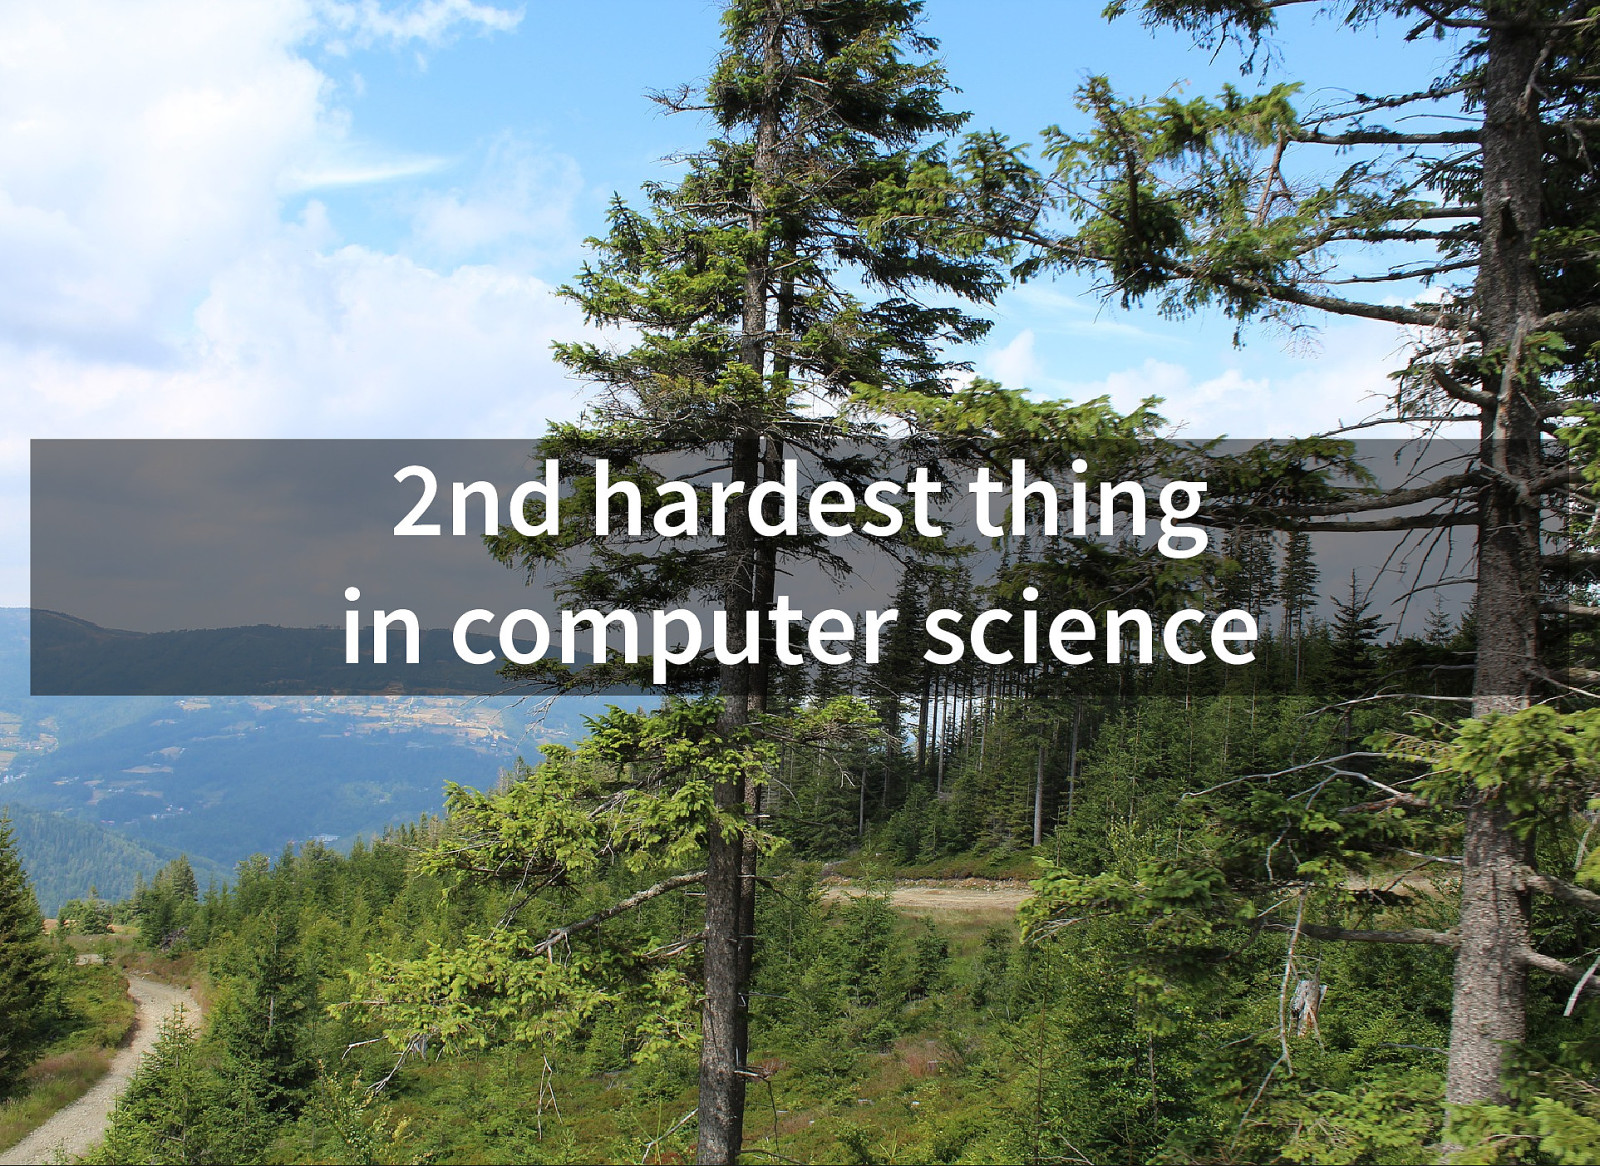 2nd hardest thing in computer science